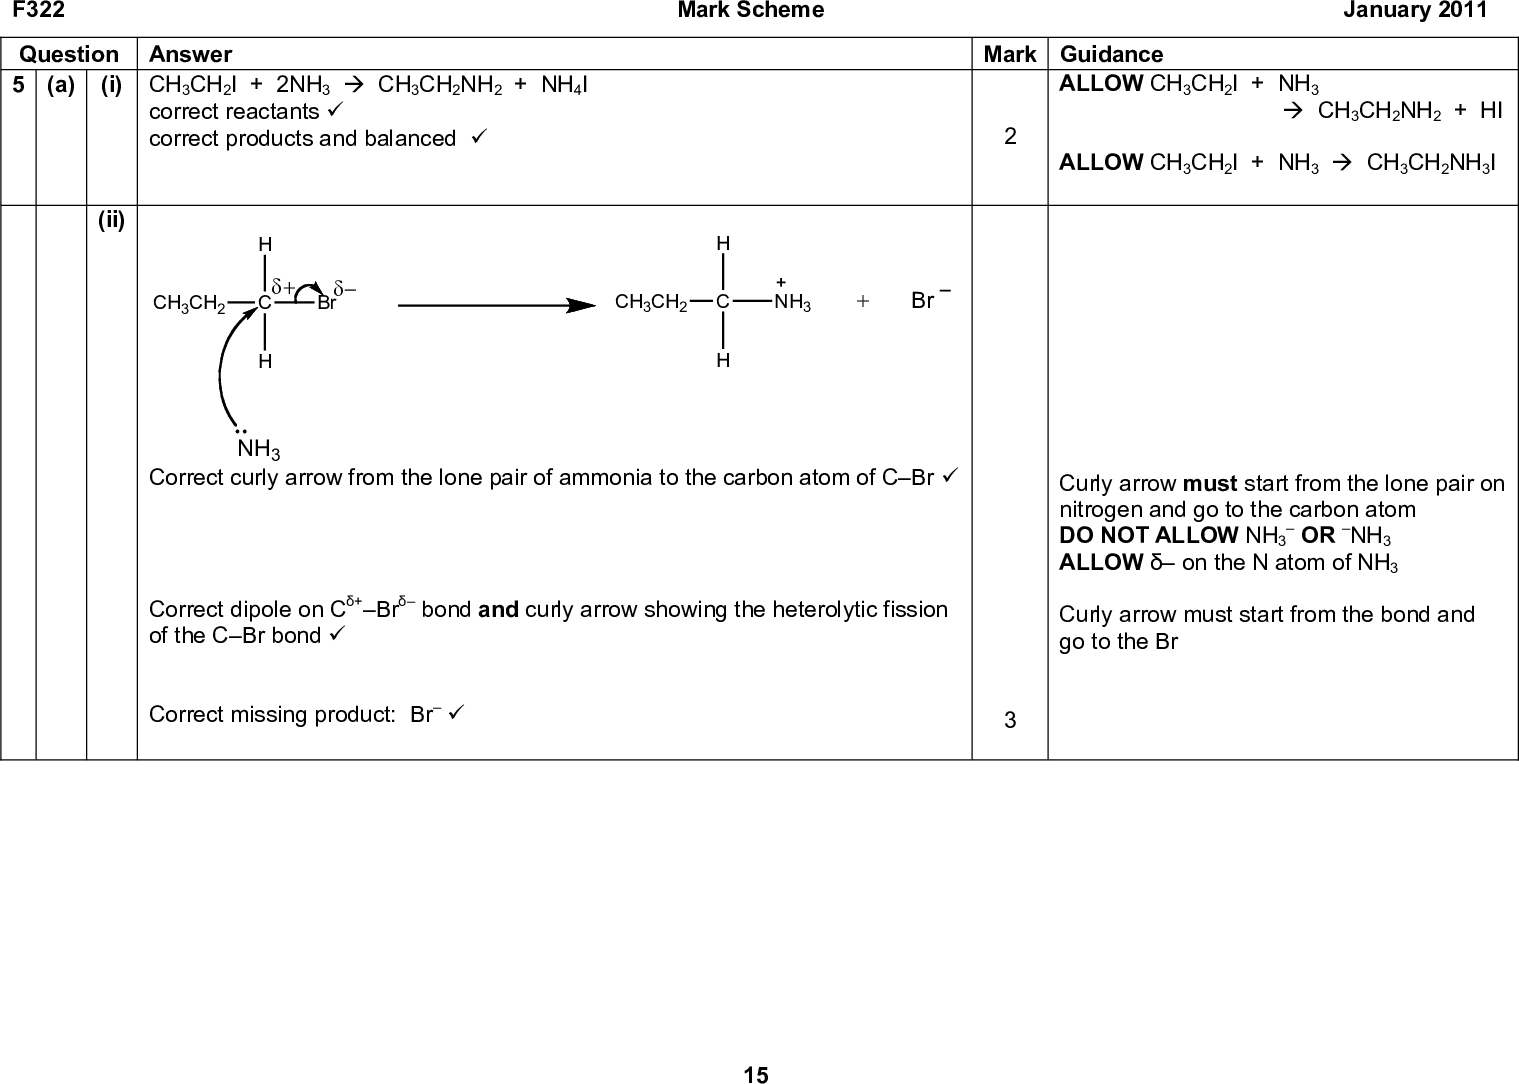 Mark Scheme January 2011 Mark Guidance ALLOW CH3CH2I + NH3 (cid:198) CH3CH2NH2 + HI ALLOW CH3CH2I + NH3 (cid:198) CH3CH2NH3I Curly arrow must start from the lone pair on nitrogen and go to the carbon atom DO NOT ALLOW NH3OR NH3 ALLOWon the N atom of NH3 Curly arrow must start from the bond and go to the Br F322 Question Answer 5 (a) (i) CH3CH2I + 2NH3 (cid:198) CH3CH2NH2 + NH4I correct reactants (cid:57) correct products and balanced (cid:57) (ii) CH3CH2 (cid:71)(cid:14) C (cid:71)(cid:16) Br CH3CH2 NH3 Br NH3 Correct curly arrow from the lone pair of ammonia to the carbon atom of CBr (cid:57) Correct dipole on C+Br bond and curly arrow showing the heterolytic fission of the CBr bond (cid:57) Correct missing product: Br (cid:57) 15<br />  F322 Question Answer 5 (b) Mark Scheme January 2011 Mark Guidance 16 Effect of halogen in RX (3 marks) Any correct comparison of rate OR reaction time between at least TWO of chloroalkane, bromoalkane and iodoalkane (cid:57) Bond strength OR bond enthalpy/bond energy mentioned anywhere as a factor (even if reasoning is incorrect) (cid:57) Any correct comparison of bond strength OR bond enthalpy/energy OR bond length OR ease of breaking of at least TWO of CCl, CBr and CI (cid:57) ANNOTATE WITH TICKS AND CROSSES Examples chloroalkane reacts the slowest iodo compound reacts the fastest CI bond is hydrolysed faster than CBr CBr has shorter reaction time than CCl DO NOT ALLOW references to halogens as elements: ie chlorine is less reactive than bromine than iodine DO NOT ALLOW chloride, bromide and iodide ALLOW this mark if mentioned within effect of halogen, branching OR temperature Examples CI bond is weaker than CBr bond CI bond is the weakest CCl bond is shorter than CI bond CCl is strongest bond CBr is broken more easily than CCl<br />  F322 Question Answer 5 (b) Mark Scheme January 2011 Mark Guidance Effect of branching (2 marks) Any correct comparison of rate or reaction time between at least TWO of the bromoalkanes (cid:57) A se